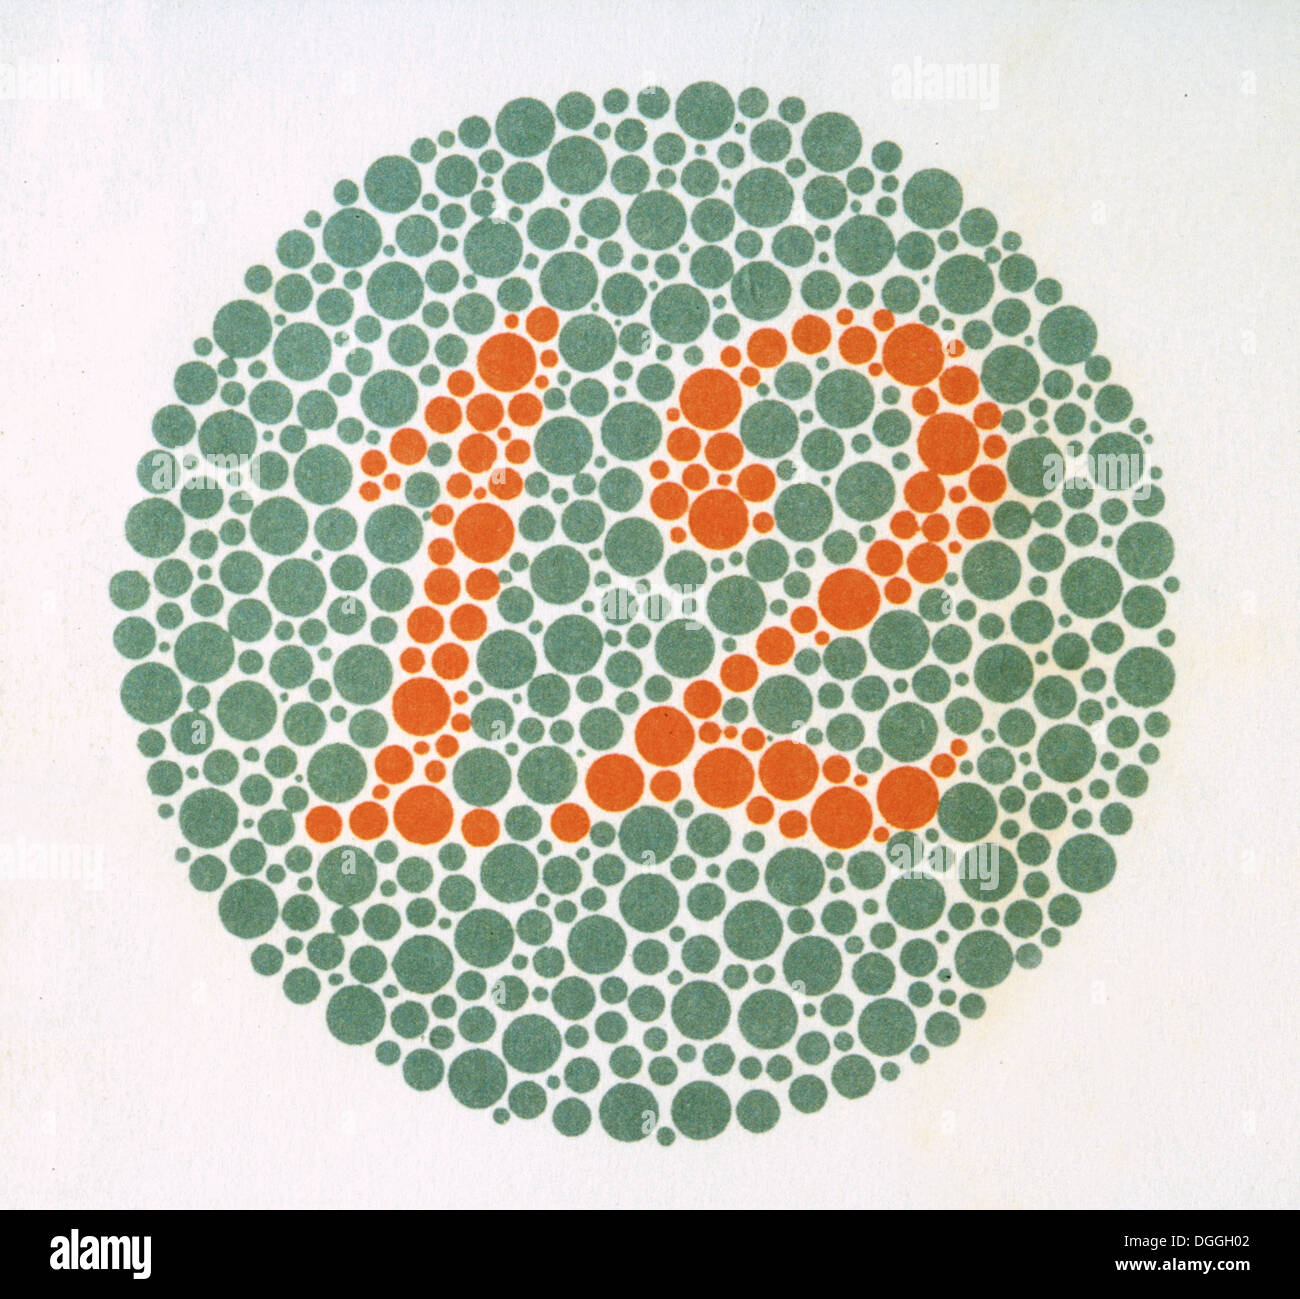 Color vision art - The Ishihara Color Test Color Perception Test For Red Green Color Deficiencies Ishihara